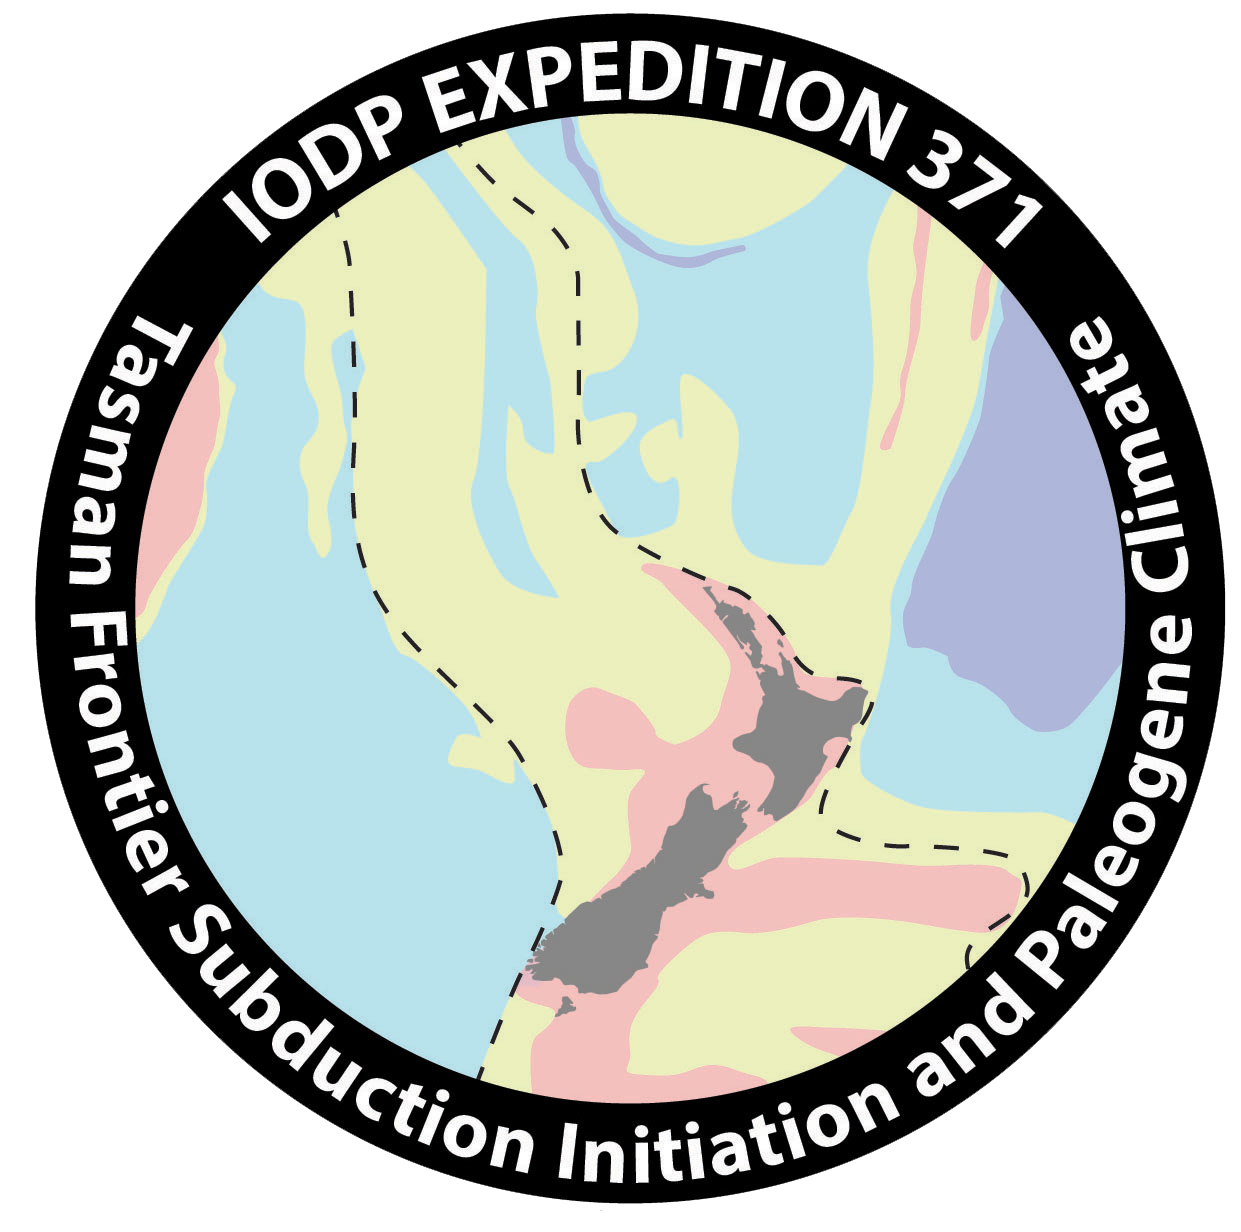 Tasman frontier subduction initiation. Geology clipart science discovery